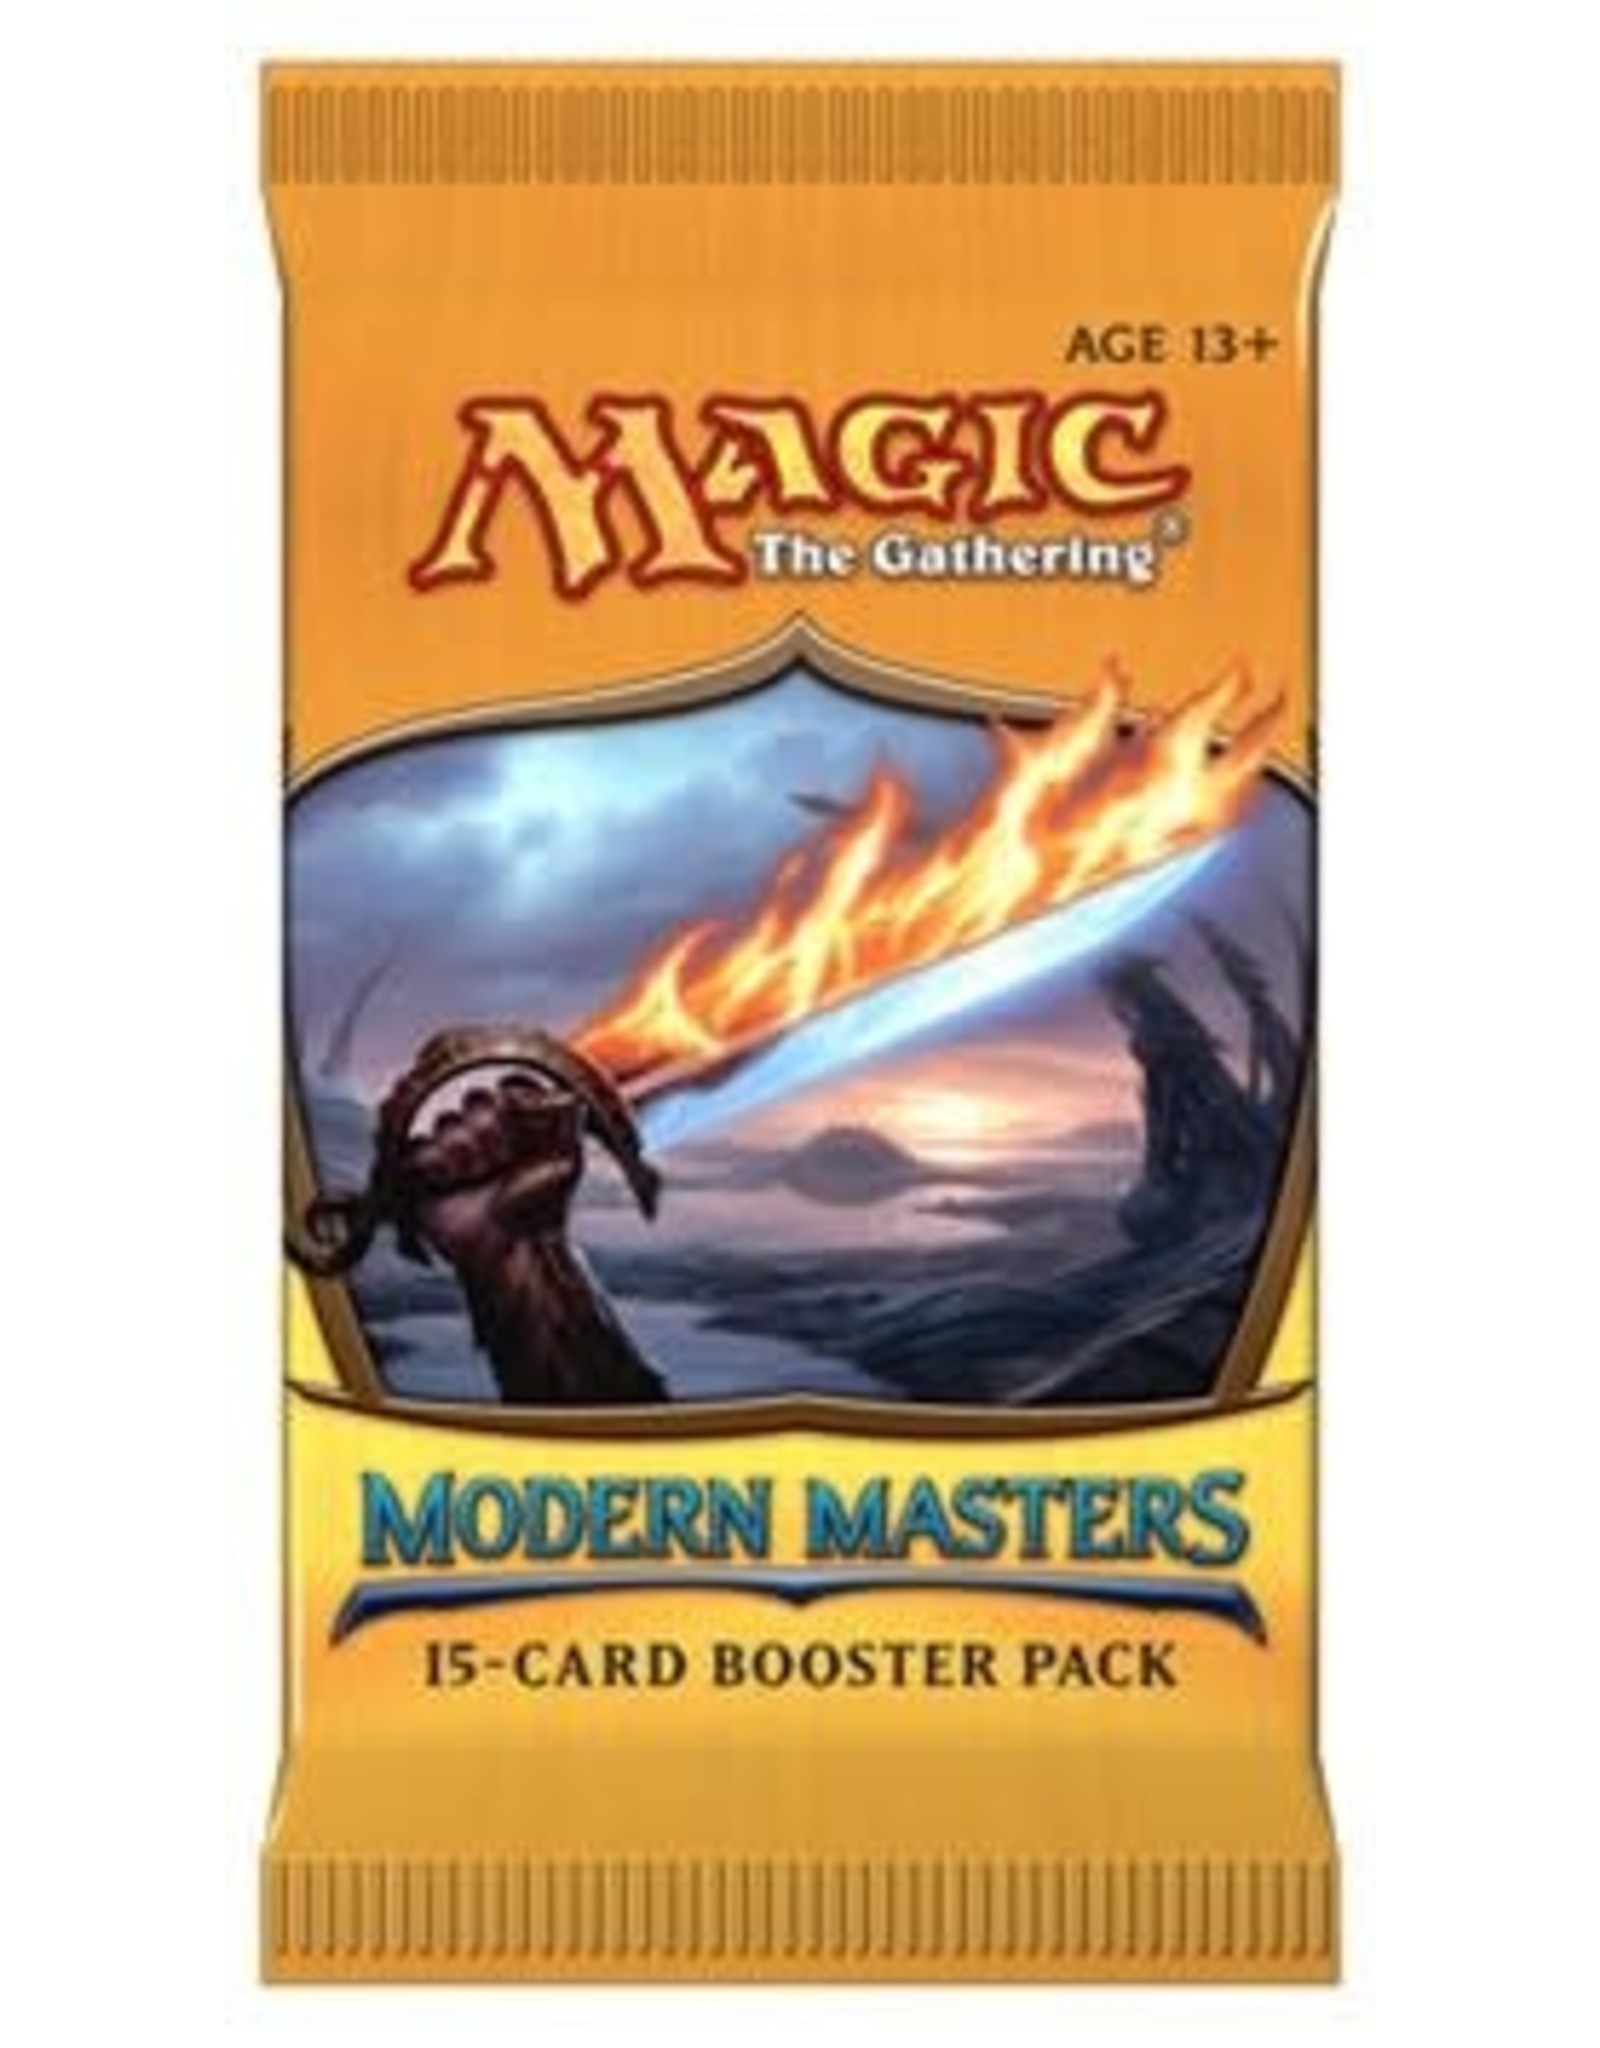 Magic: The Gathering Modern Masters - Booster Pack